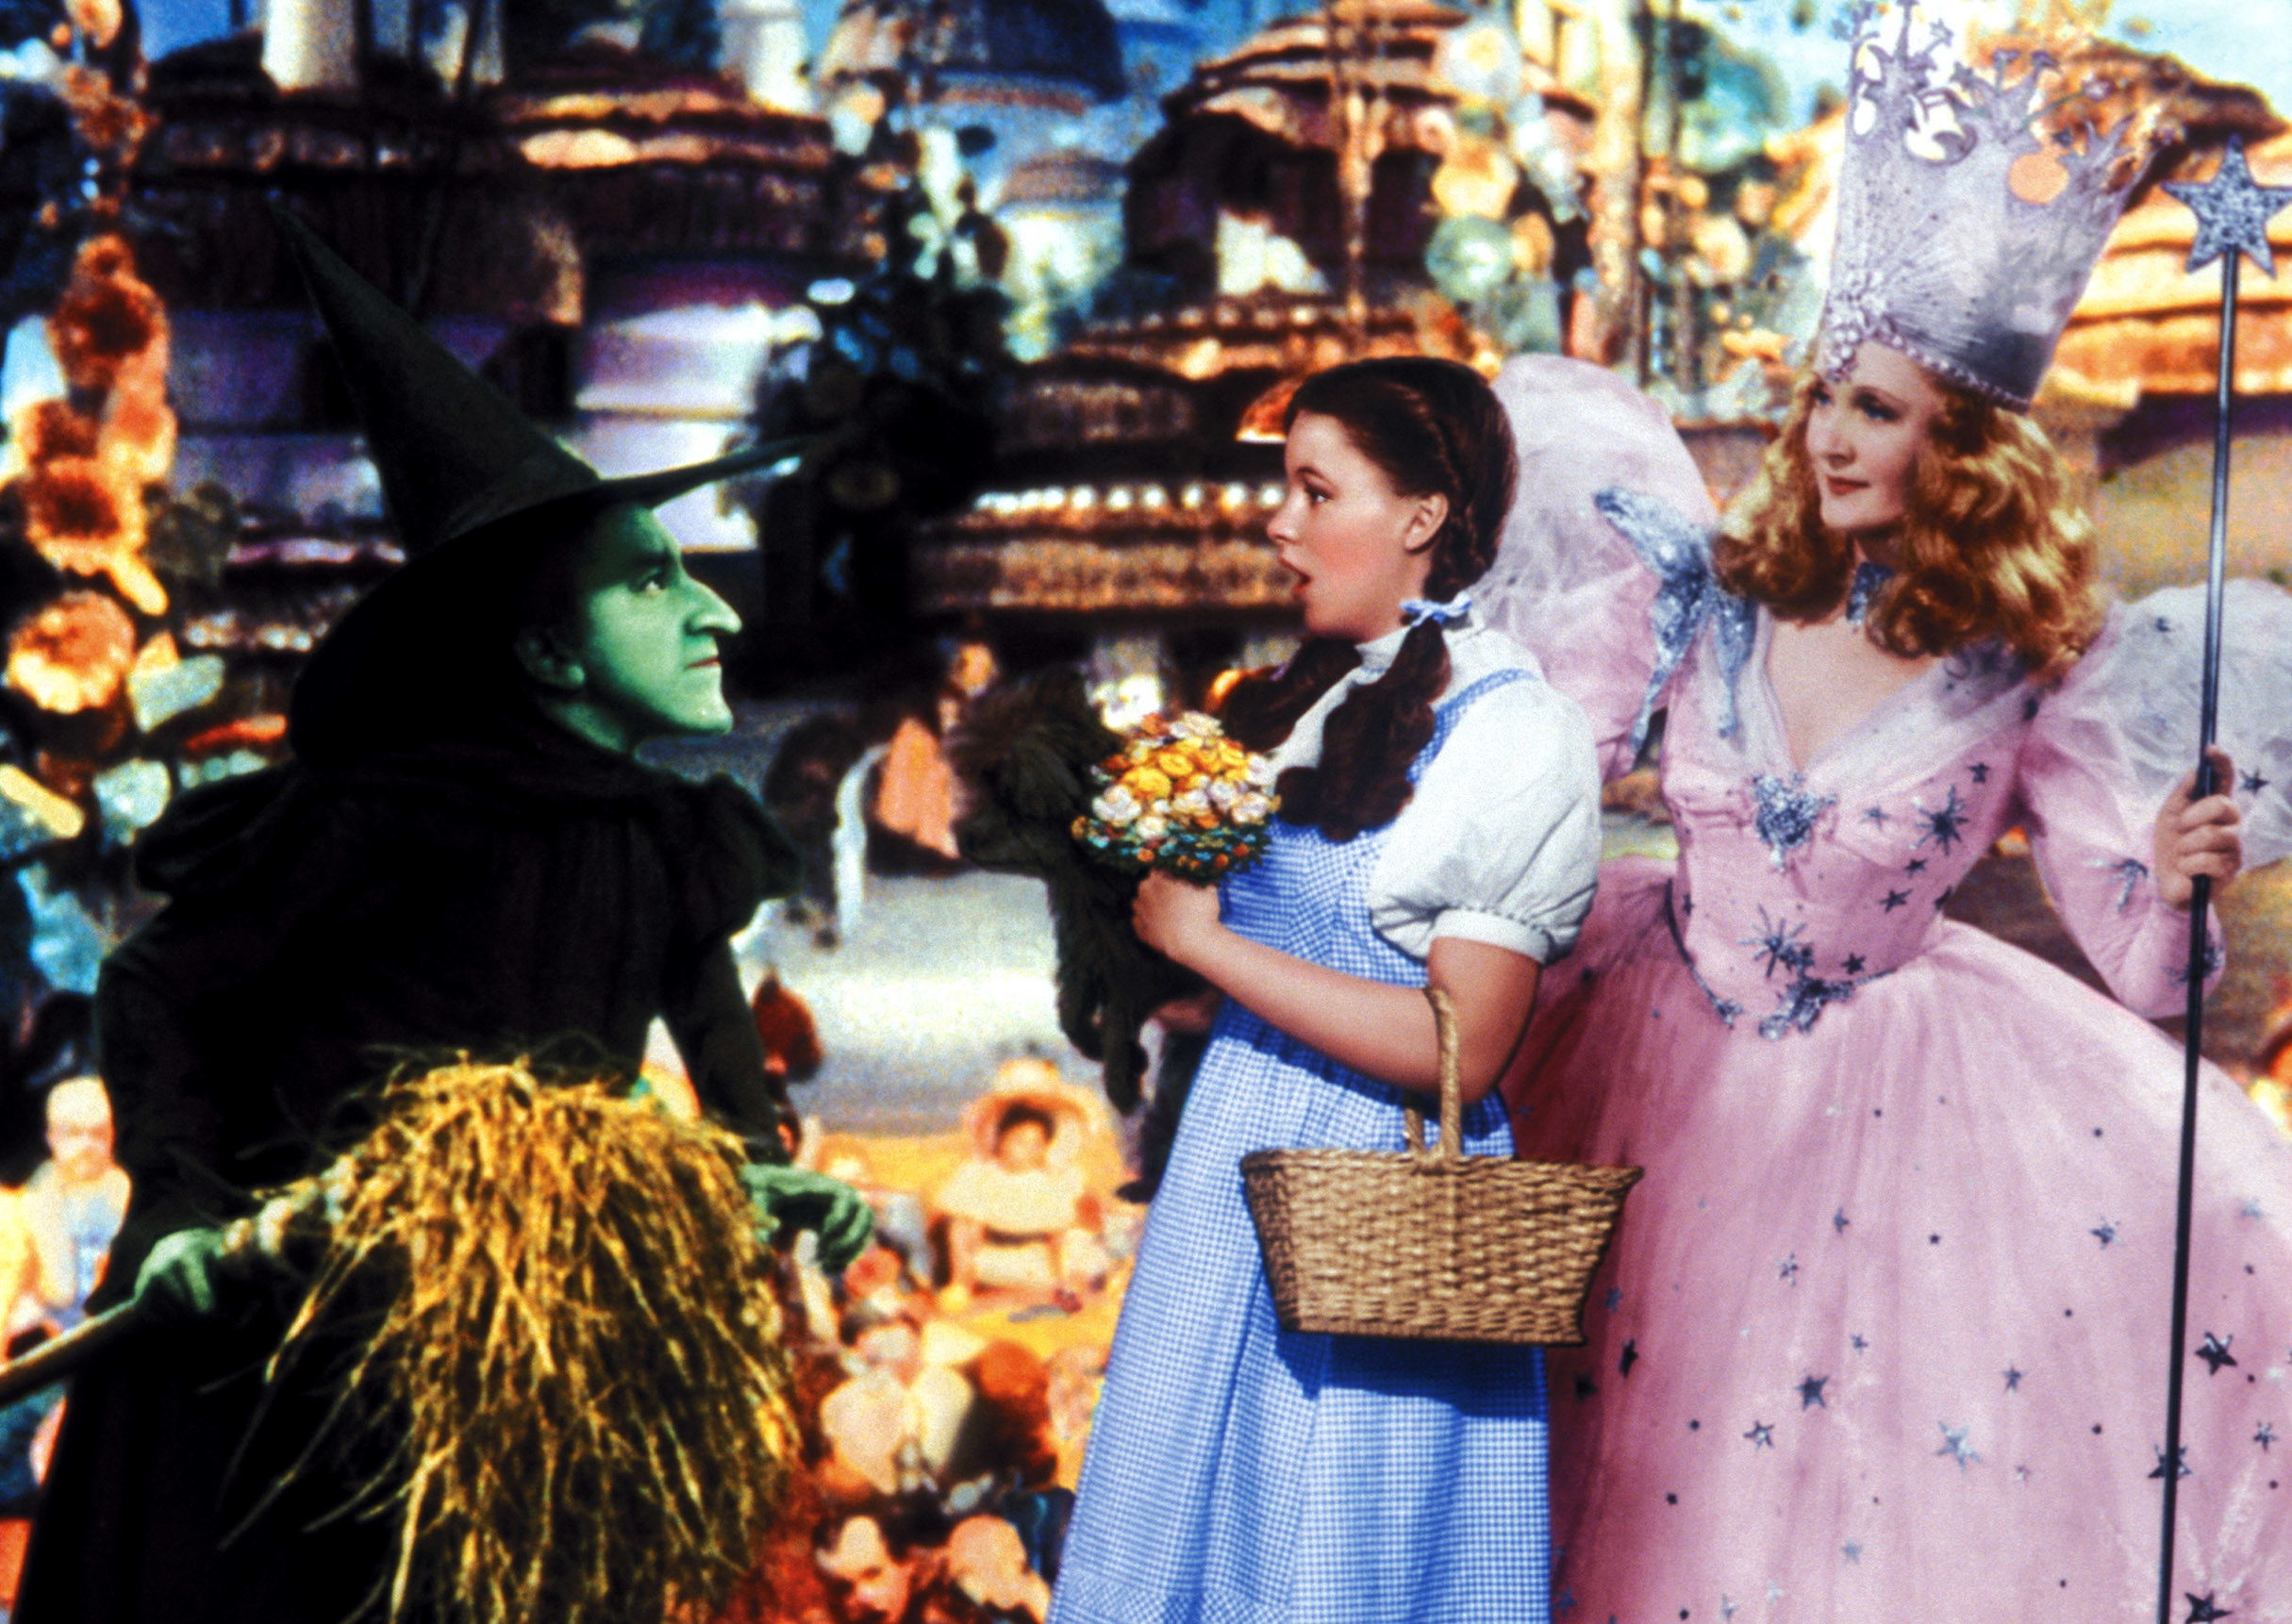 Dorothy standing scared between Glinda the Good Witch and the Wicked Witch of the West